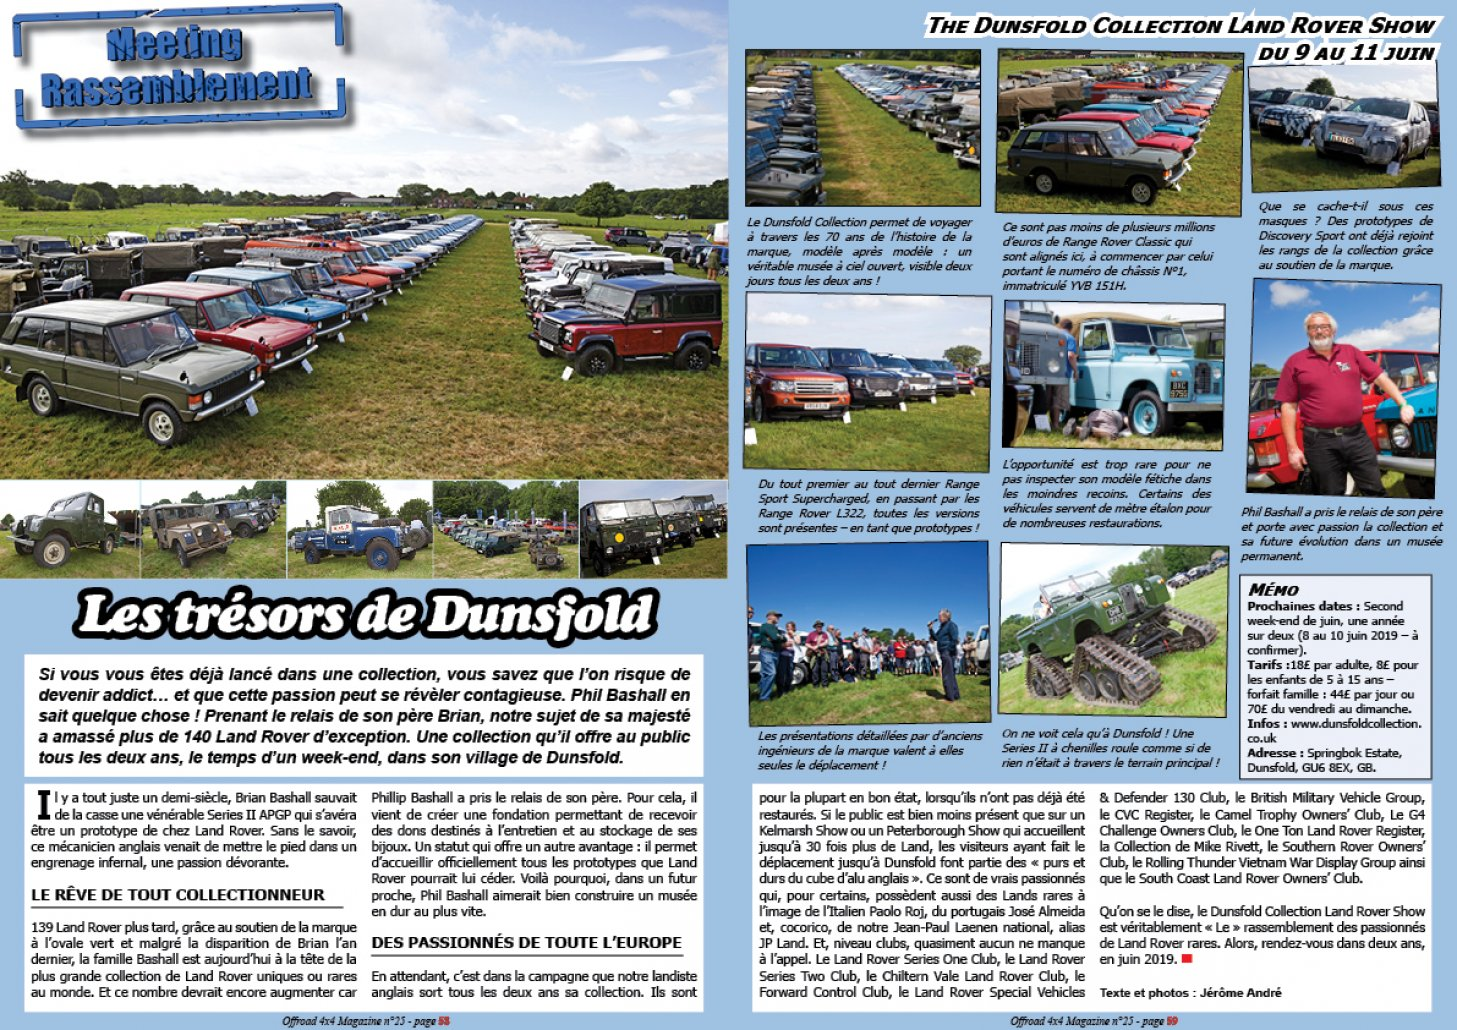 Le Dunsfold Collection LR Show 2017